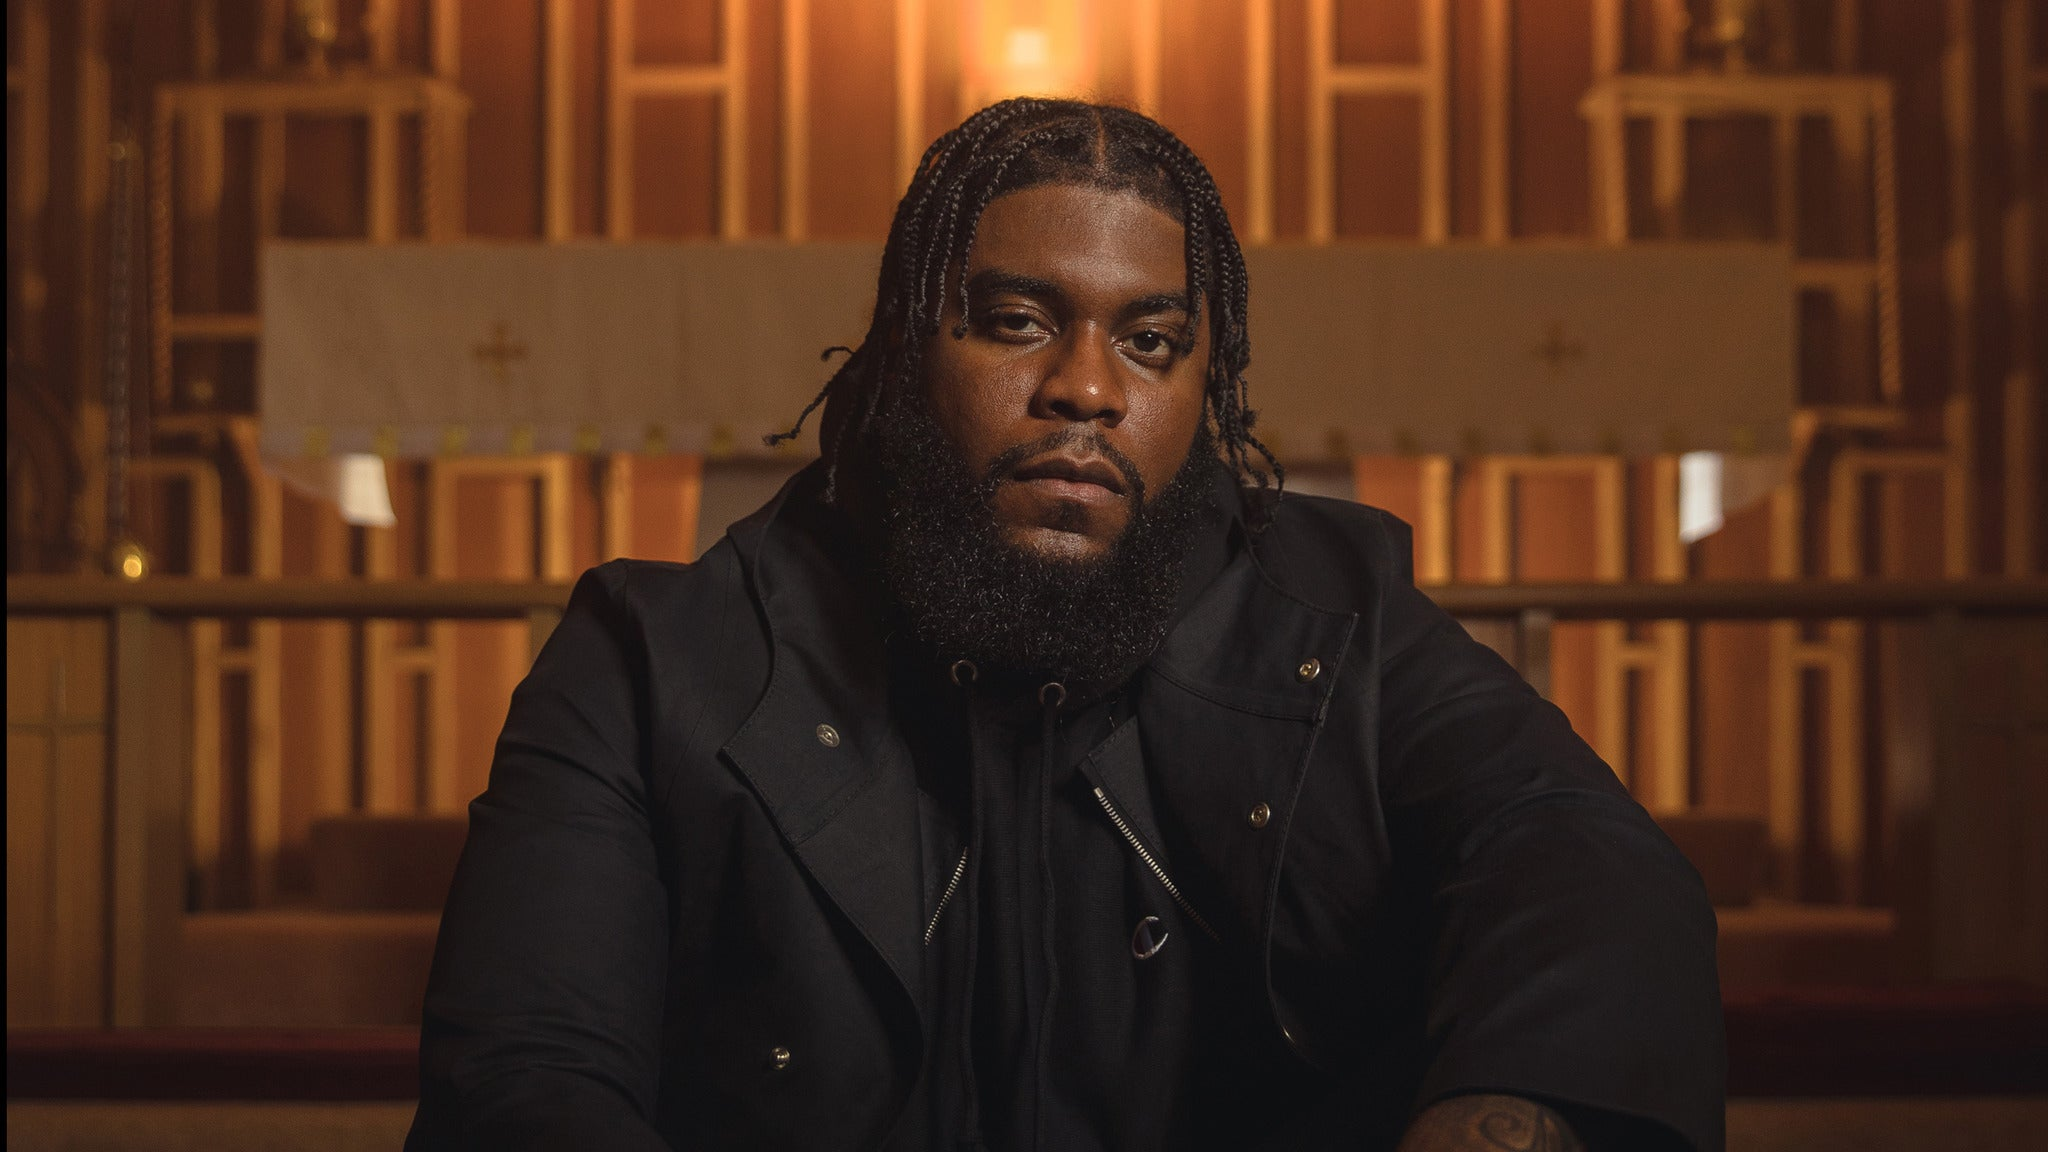 Big K.R.I.T. - From The South With Love at Ace of Spades